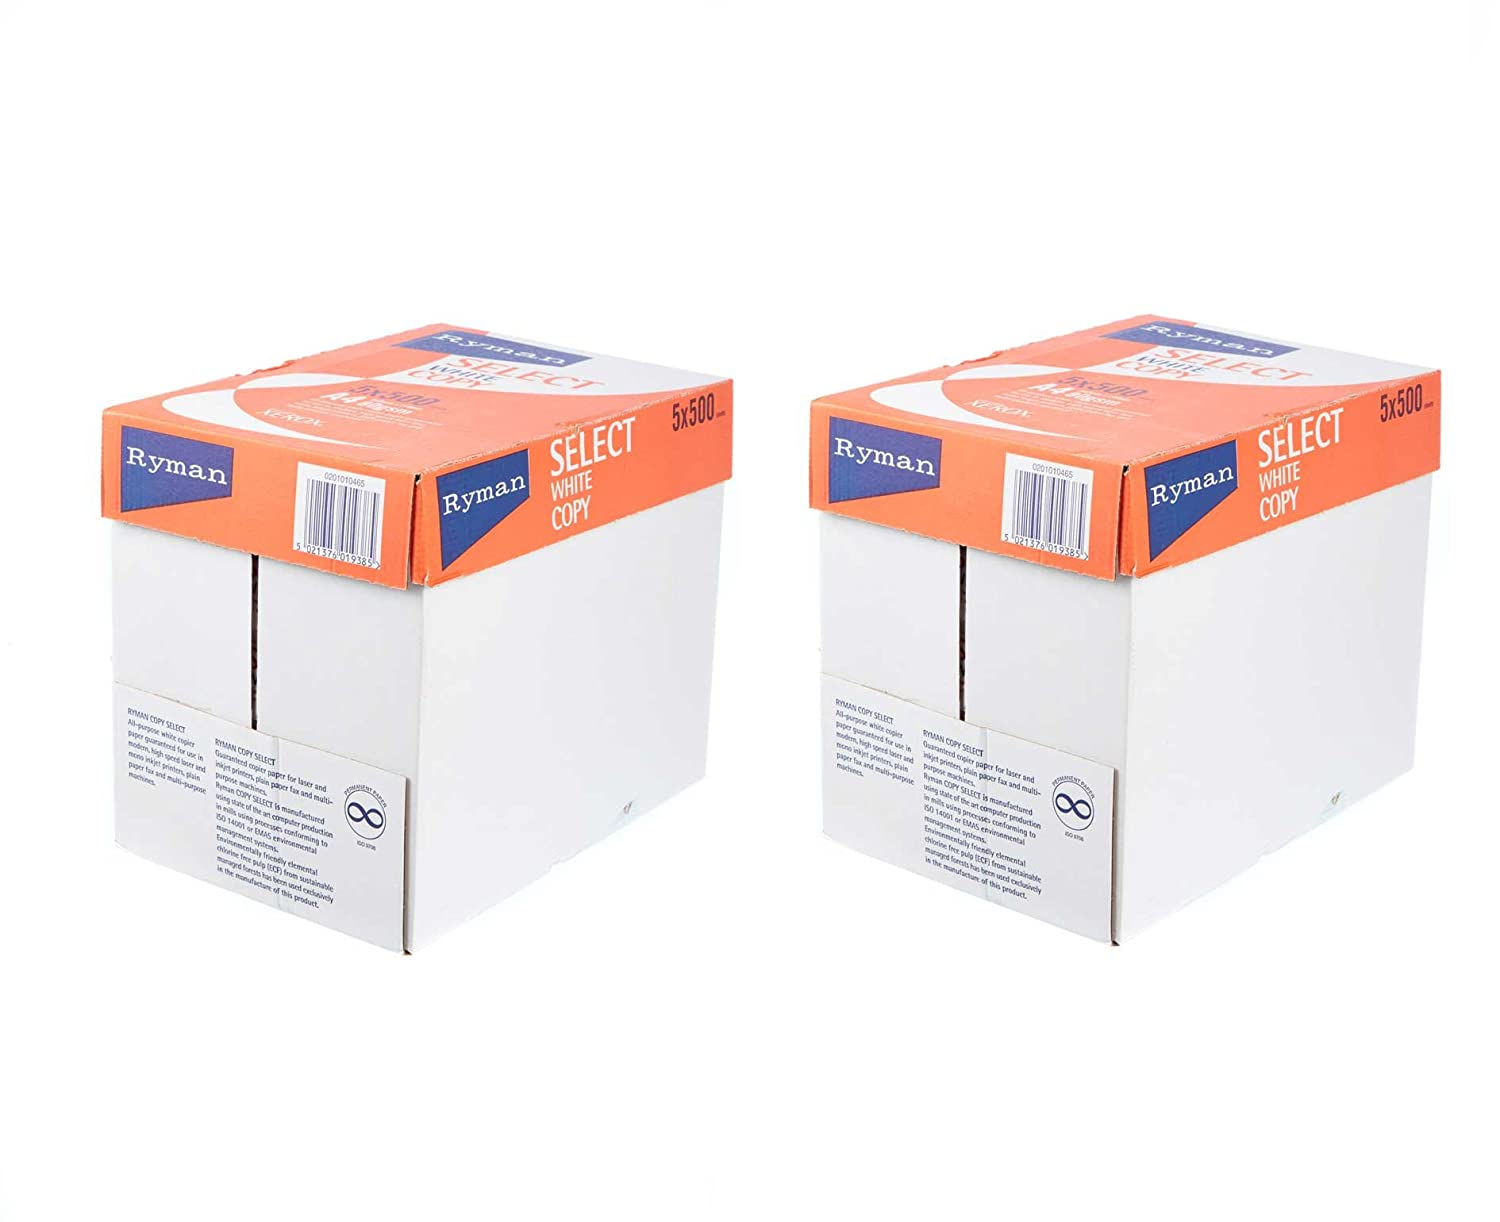 FREE P/&P! A4 XEROX 80GSM PERFORMER PAPER -  GREAT PRODUCT 150 Sheets